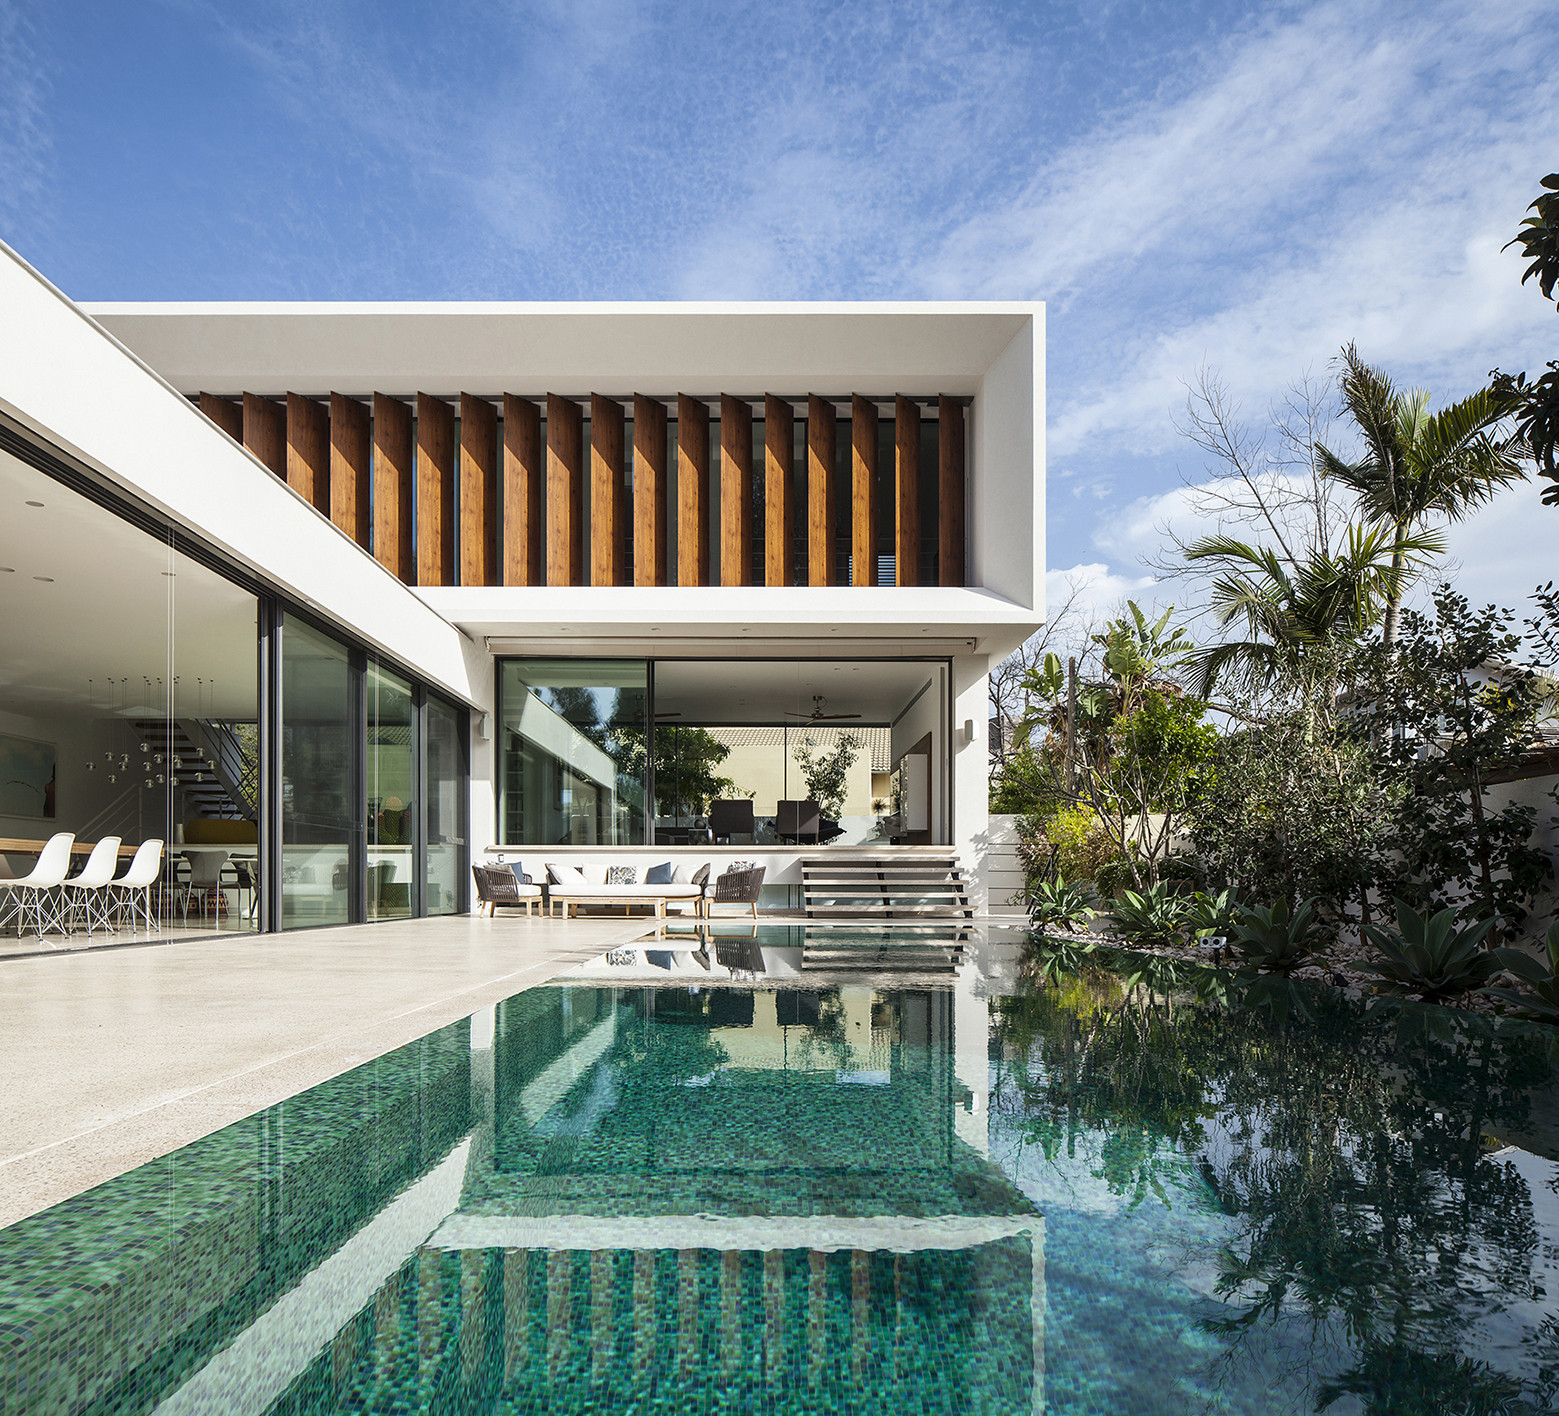 Mediterranean villa paz gersh architects archdaily for Villa de luxe design